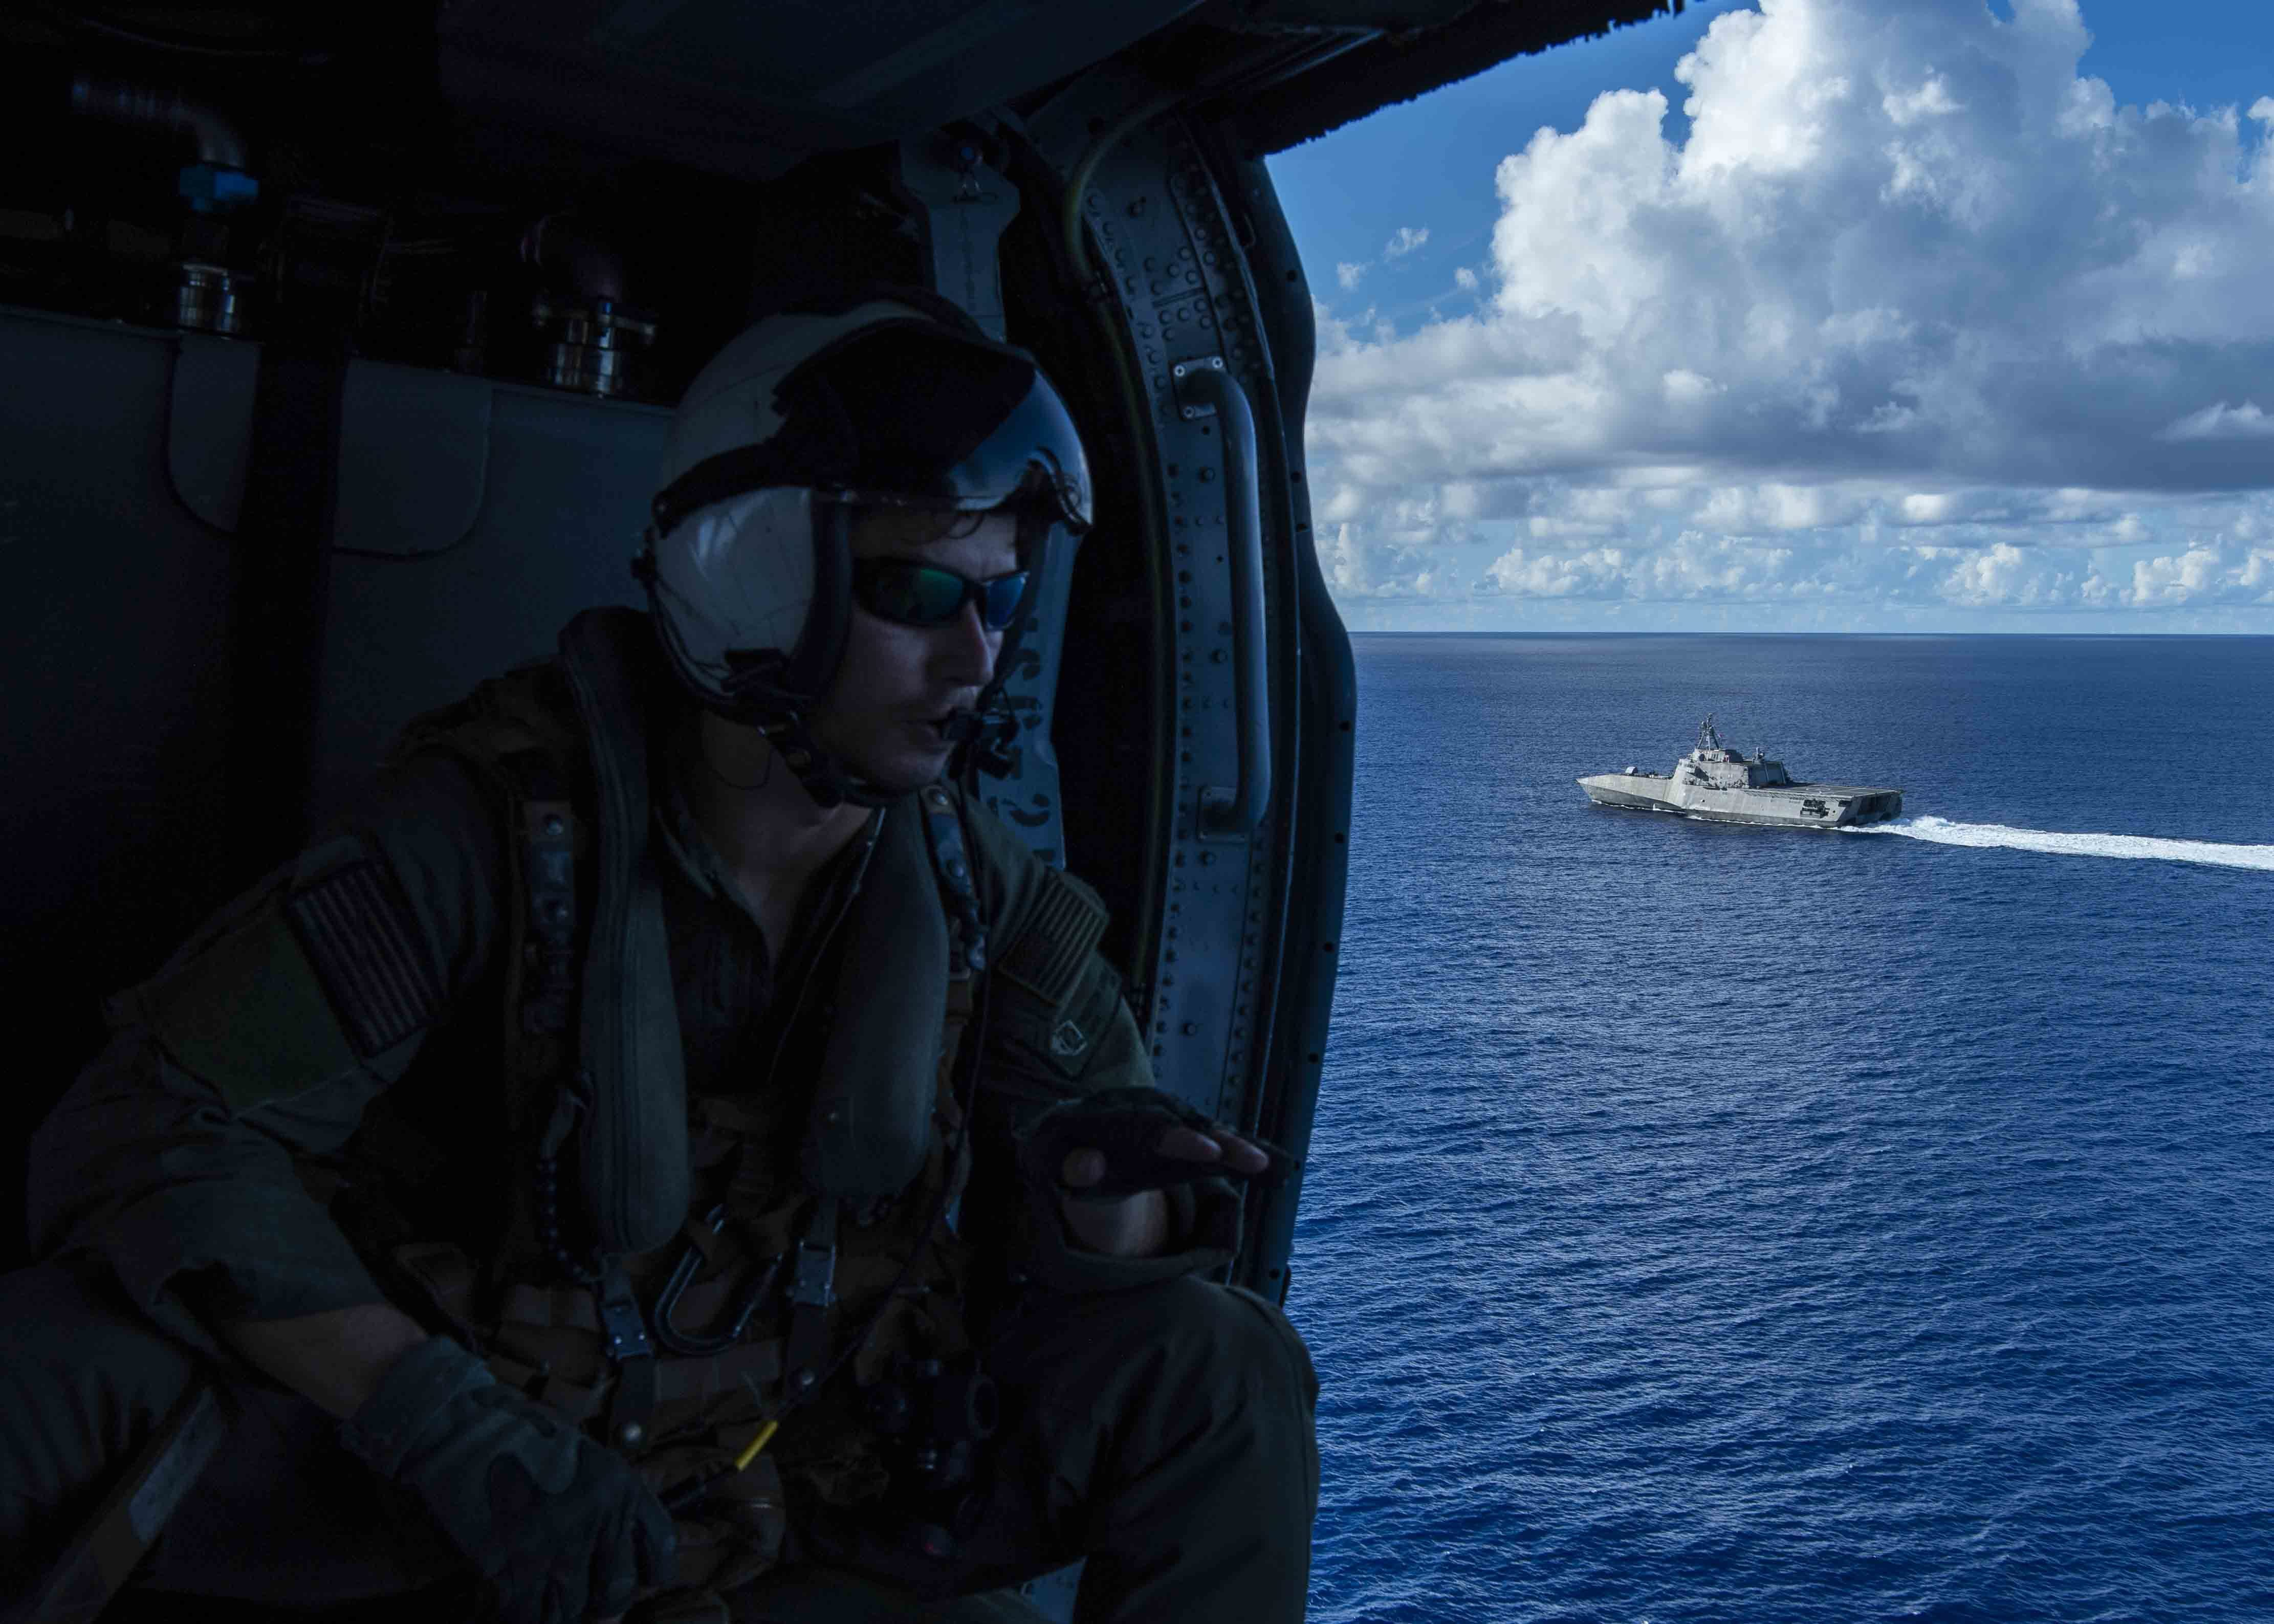 Two LCSs, Reagan Carrier Strike Group and America ESG on Patrol in the Western Pacific